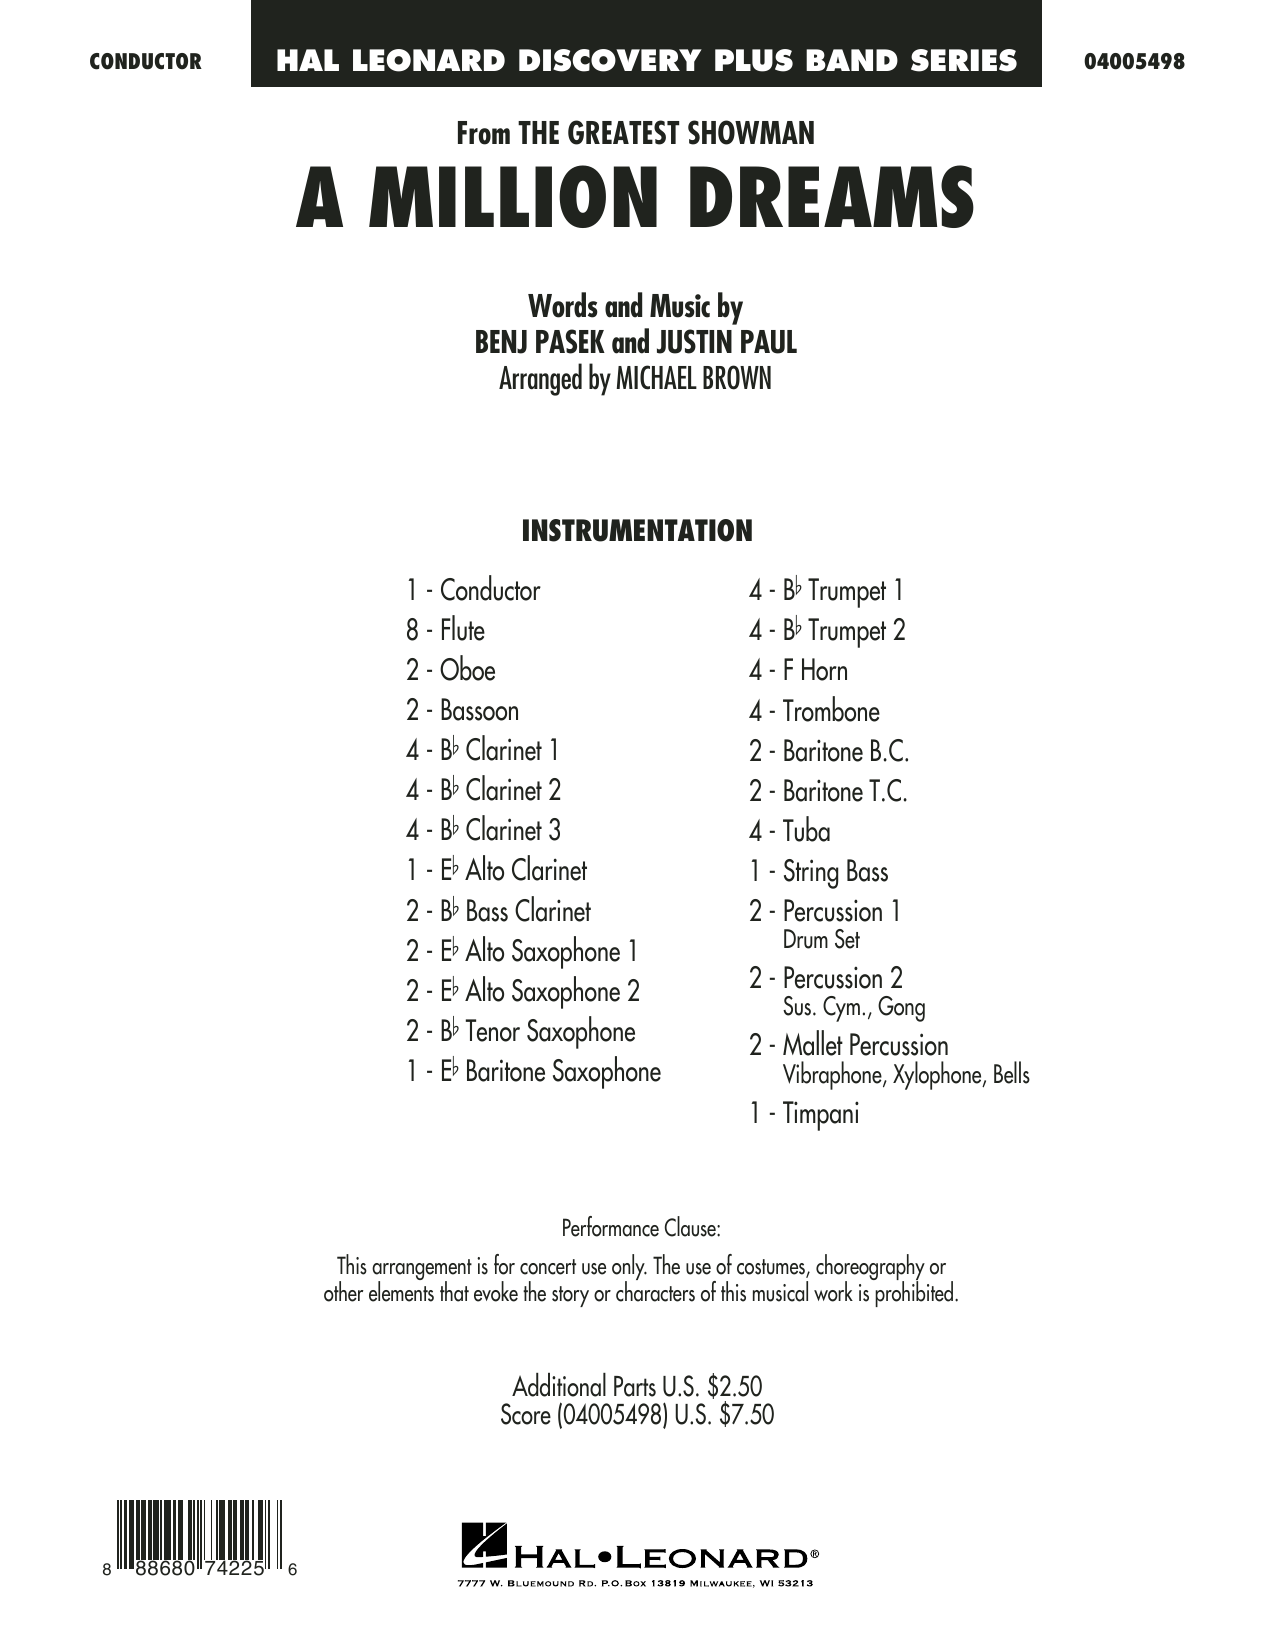 photo relating to A Million Dreams Lyrics Printable titled A Million Desires (towards The Major Showman) (arr. Michael